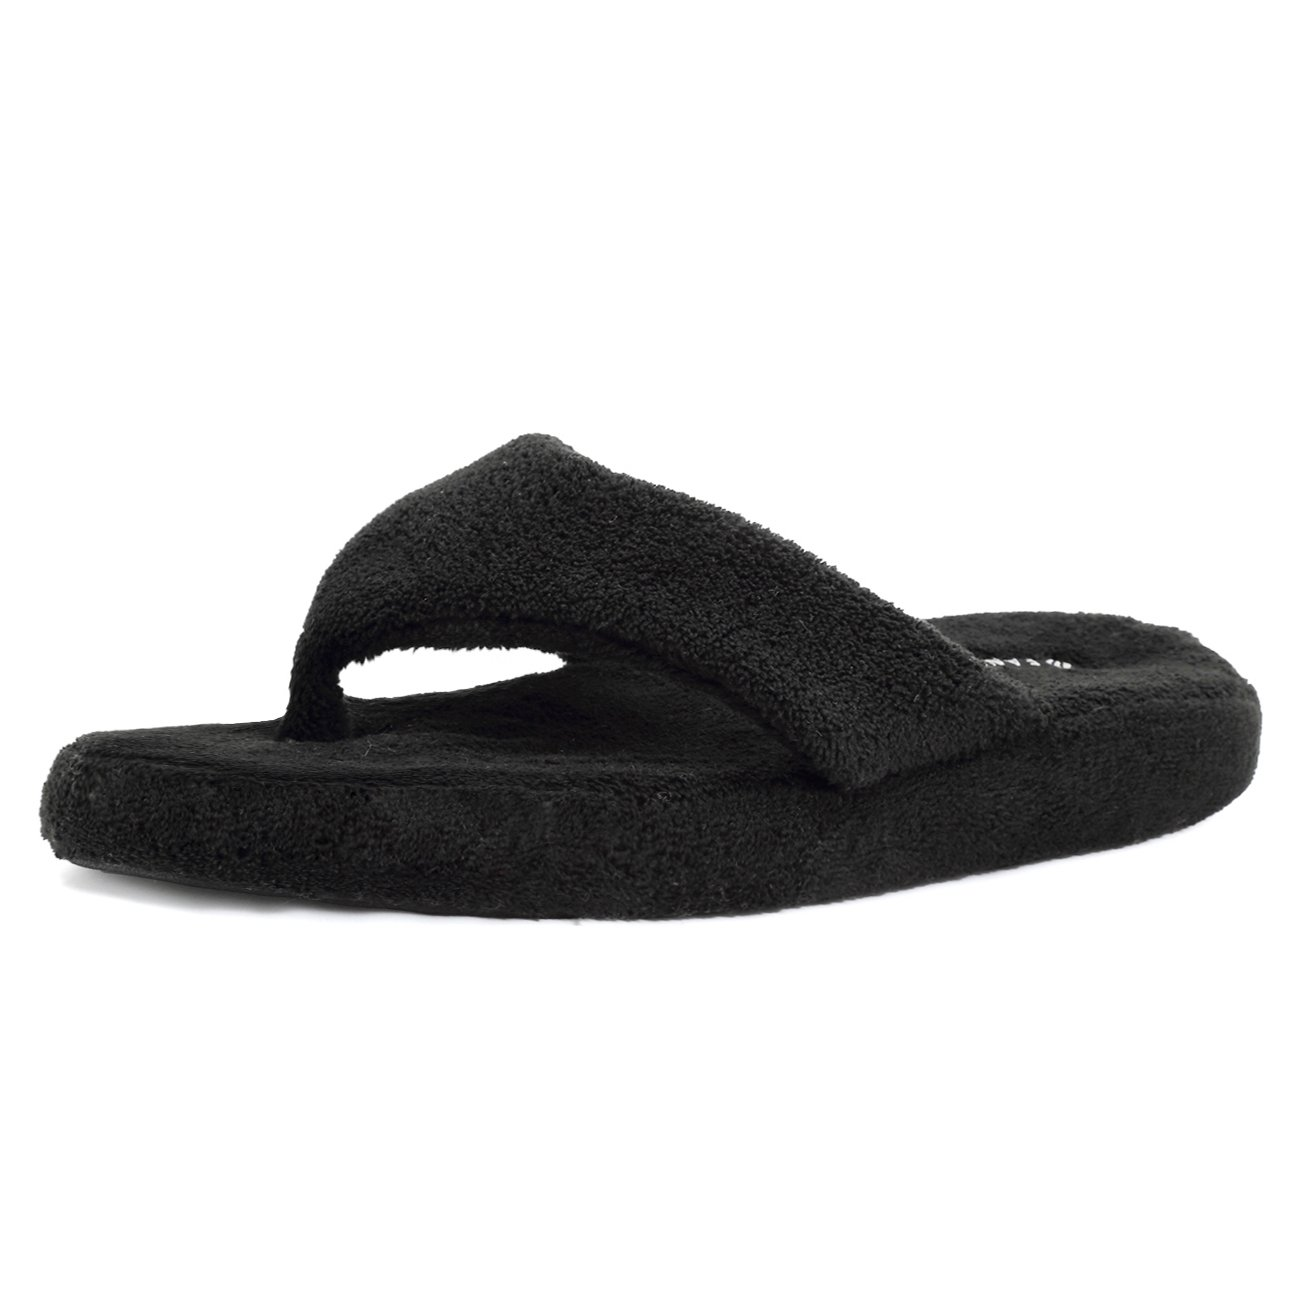 EQUICK Women Flip Flops Terry House Slippers Spa Thong Shoes Arch Support,U218WMT003,Black,38.39